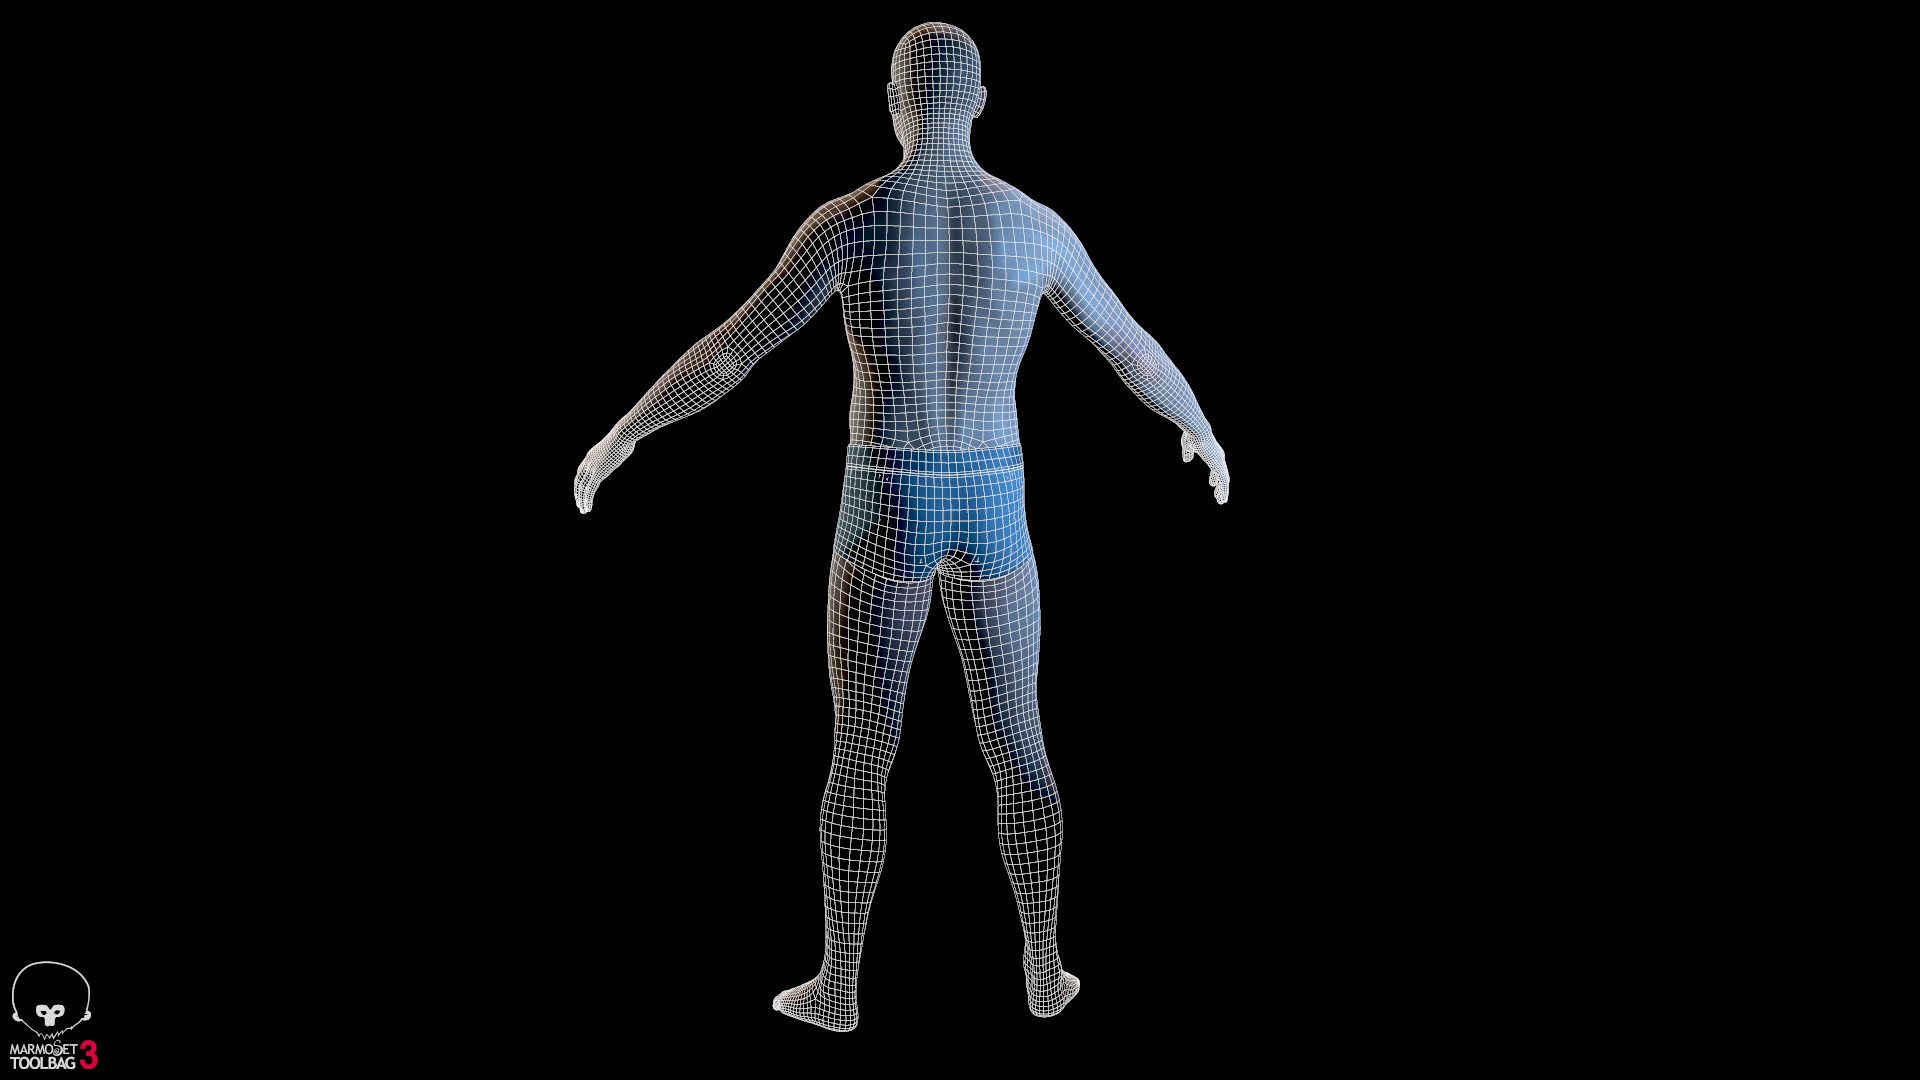 Alex lashko averagemalebody by alexlashko wireframe 04